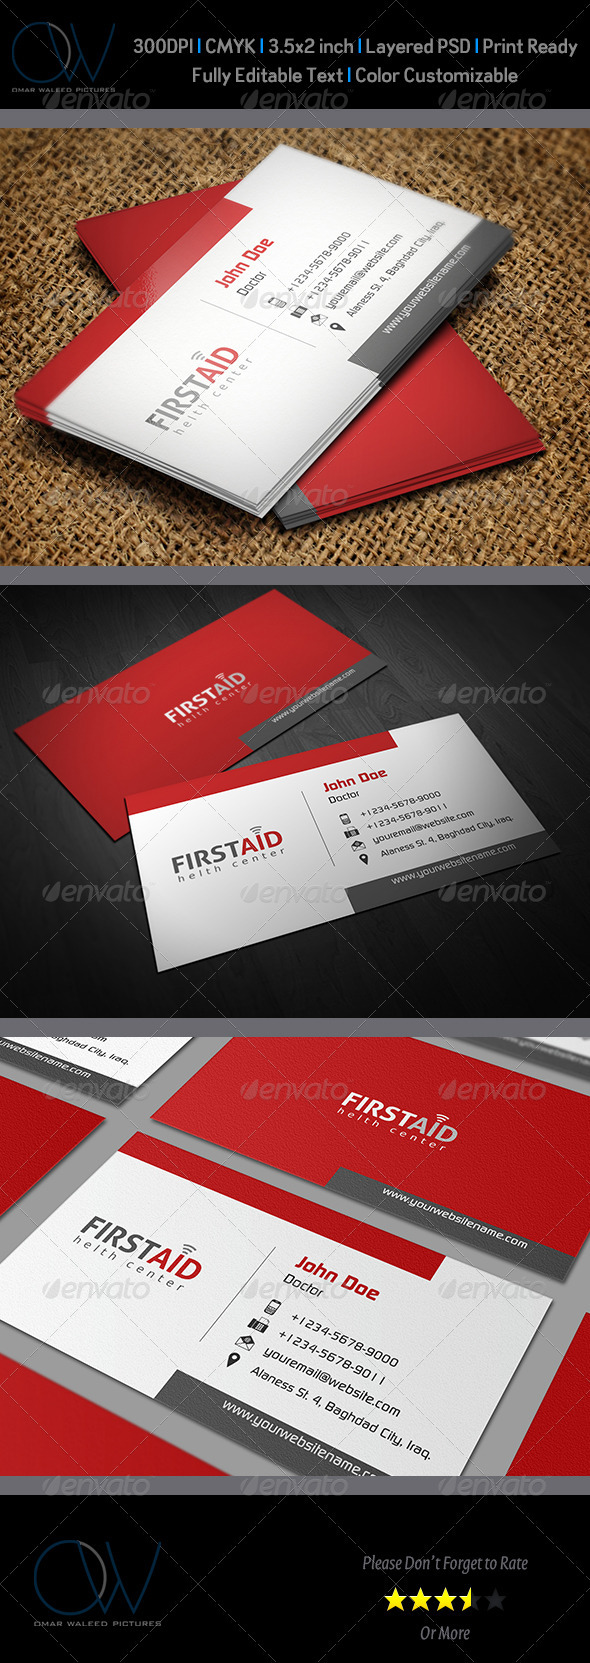 GraphicRiver First Aid Business Card 3102937